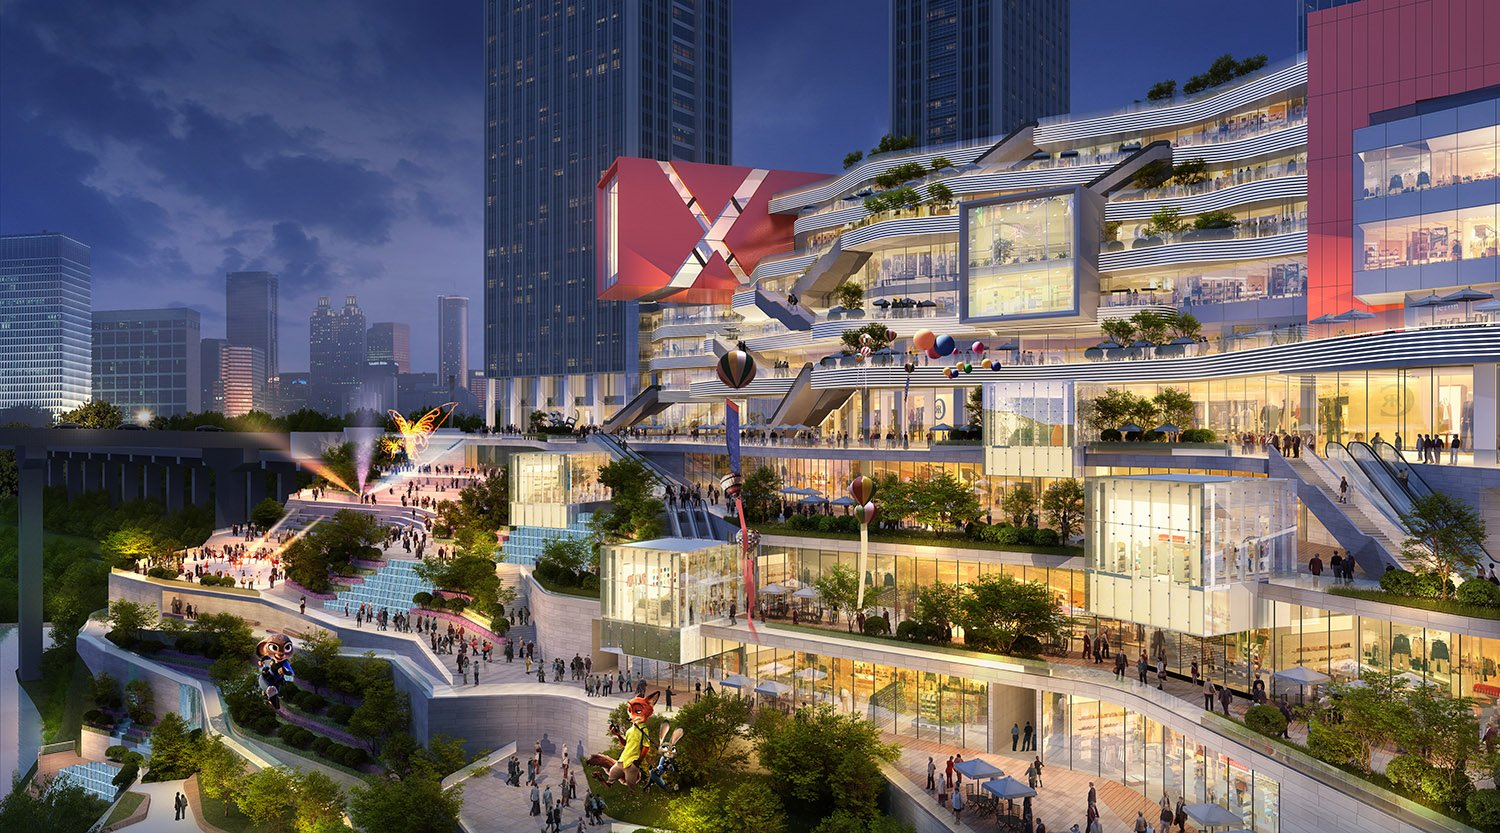 Commercial Activities merging to Landscape and South Plaza, Image by KRIS YAO│ARTECH